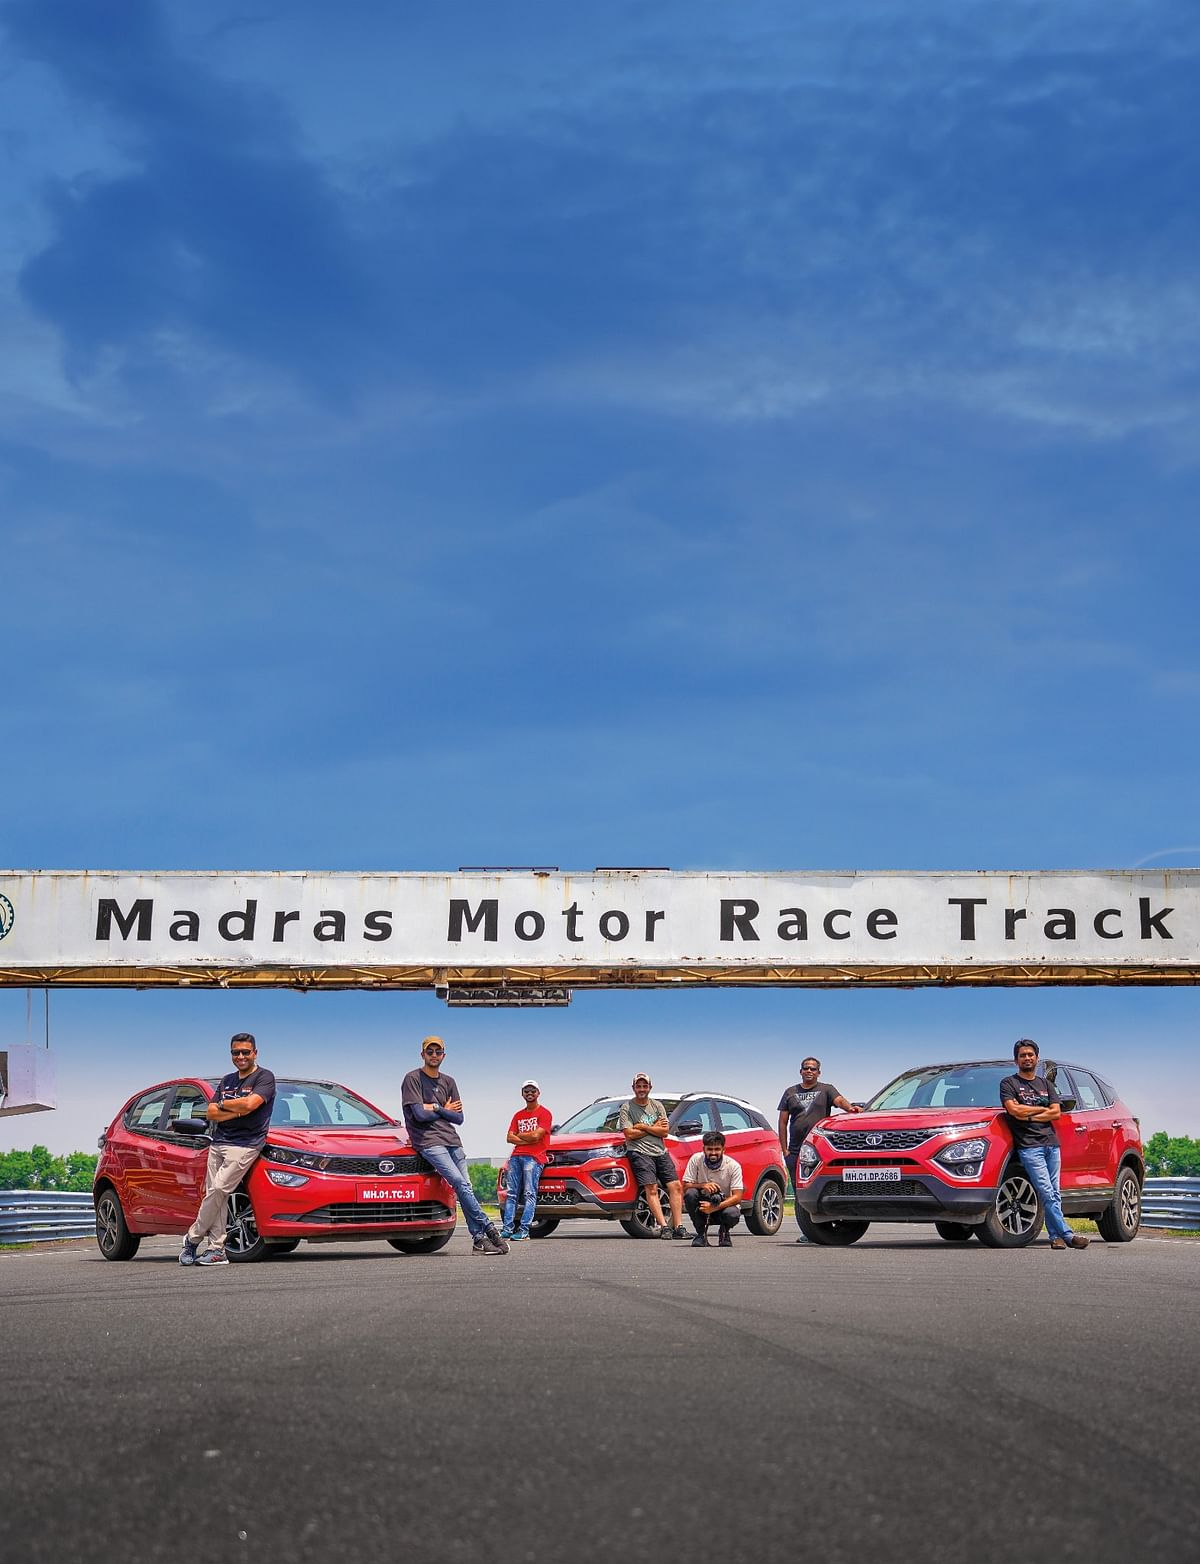 Team evo India at the home of Indian motorsport